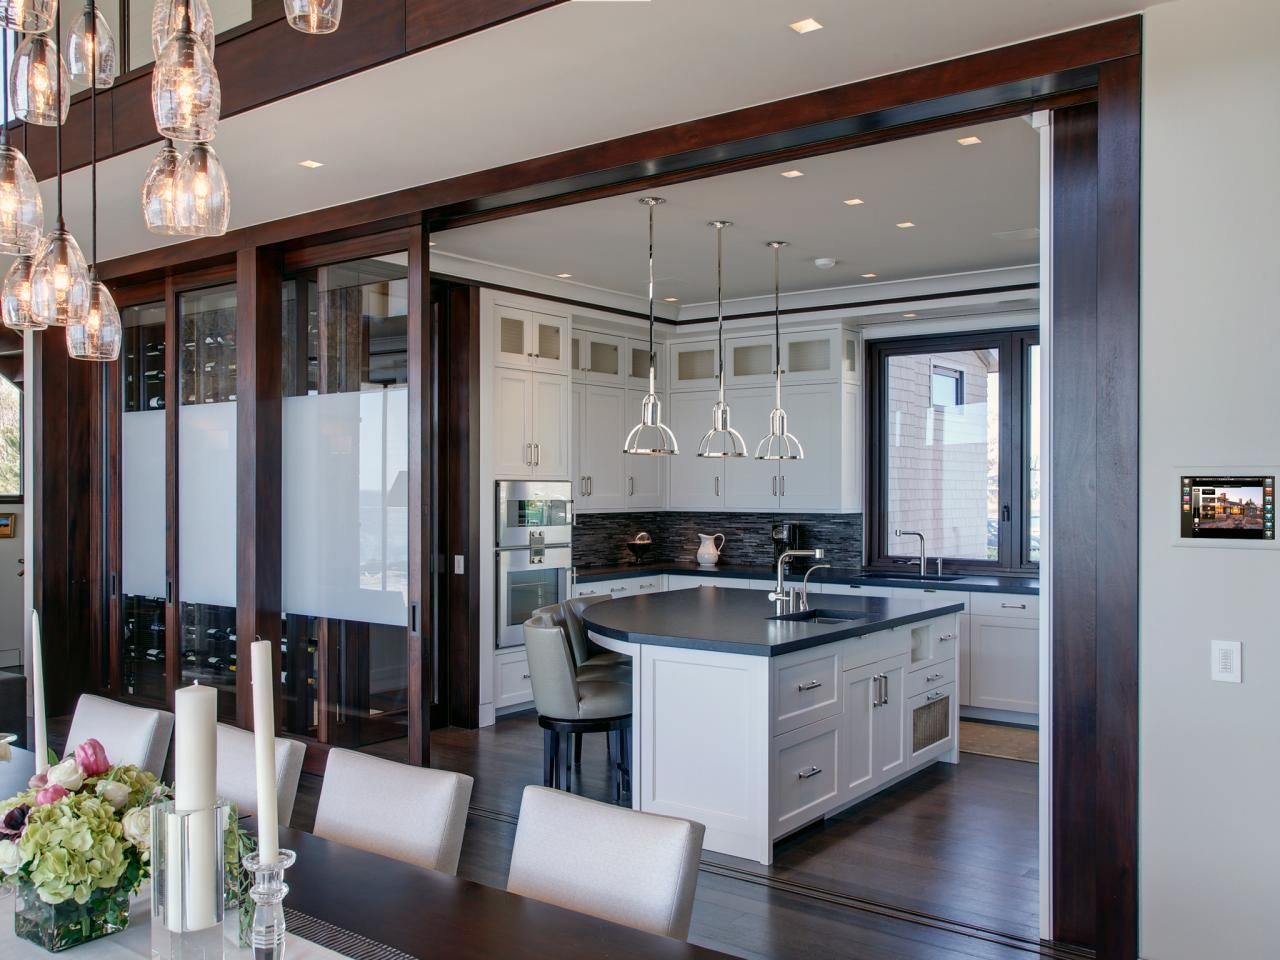 A Sleek Open Kitchen Is Connected To The Dining Room Via Sliding Glass Doors Look Feels Fresh And Updated Thanks Pendant Lights Whit